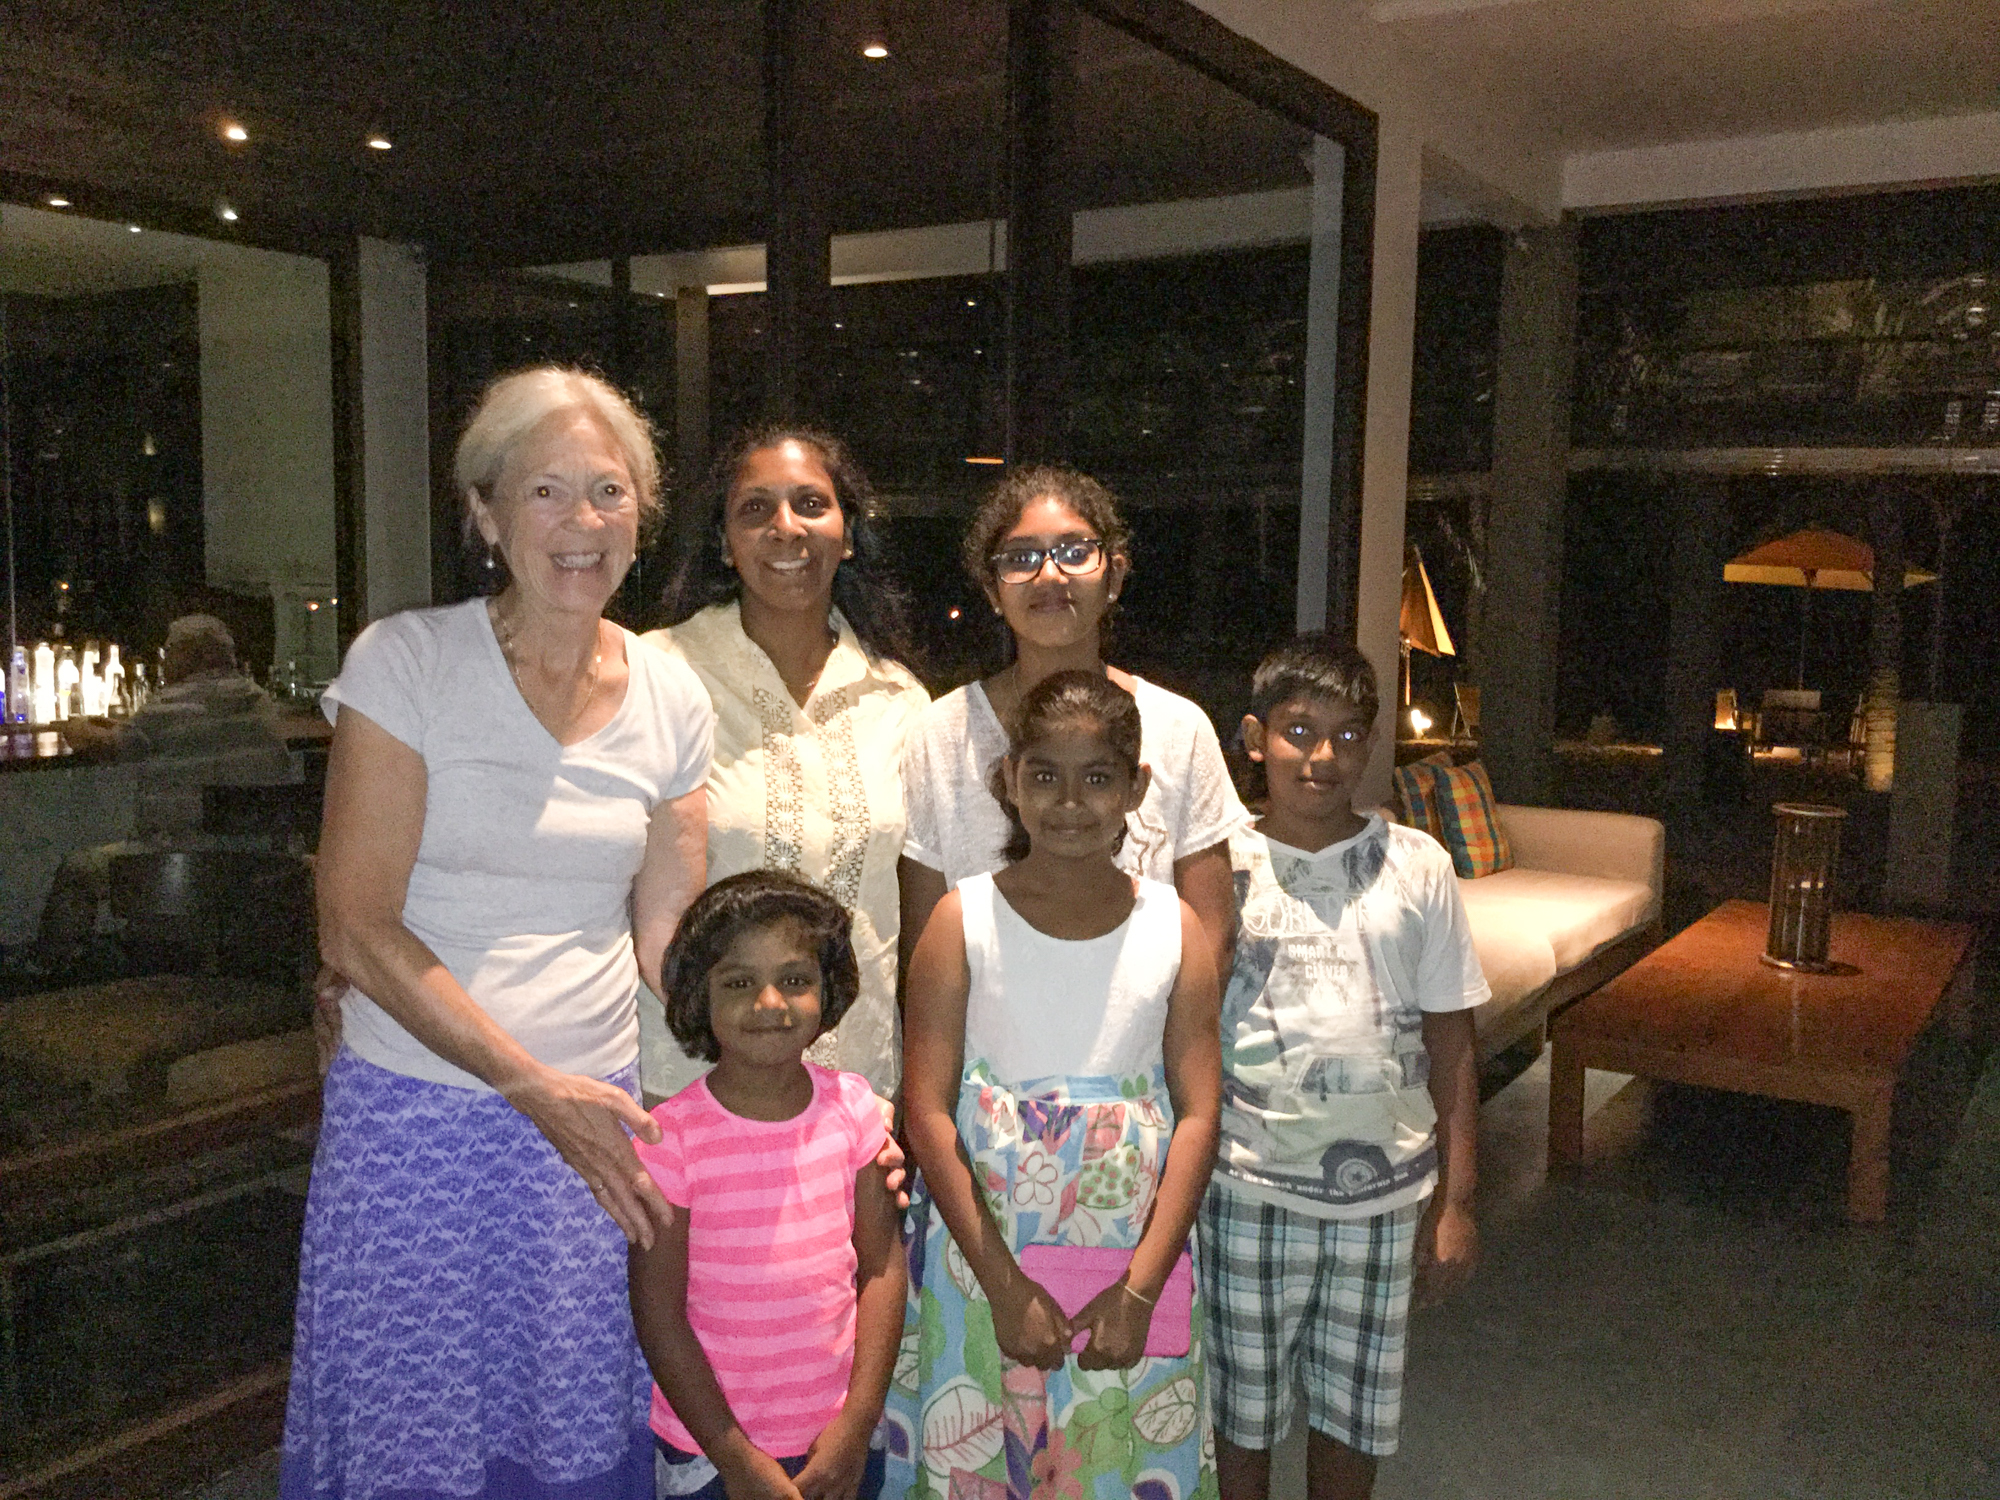 And then we met another family who wanted a photo :)